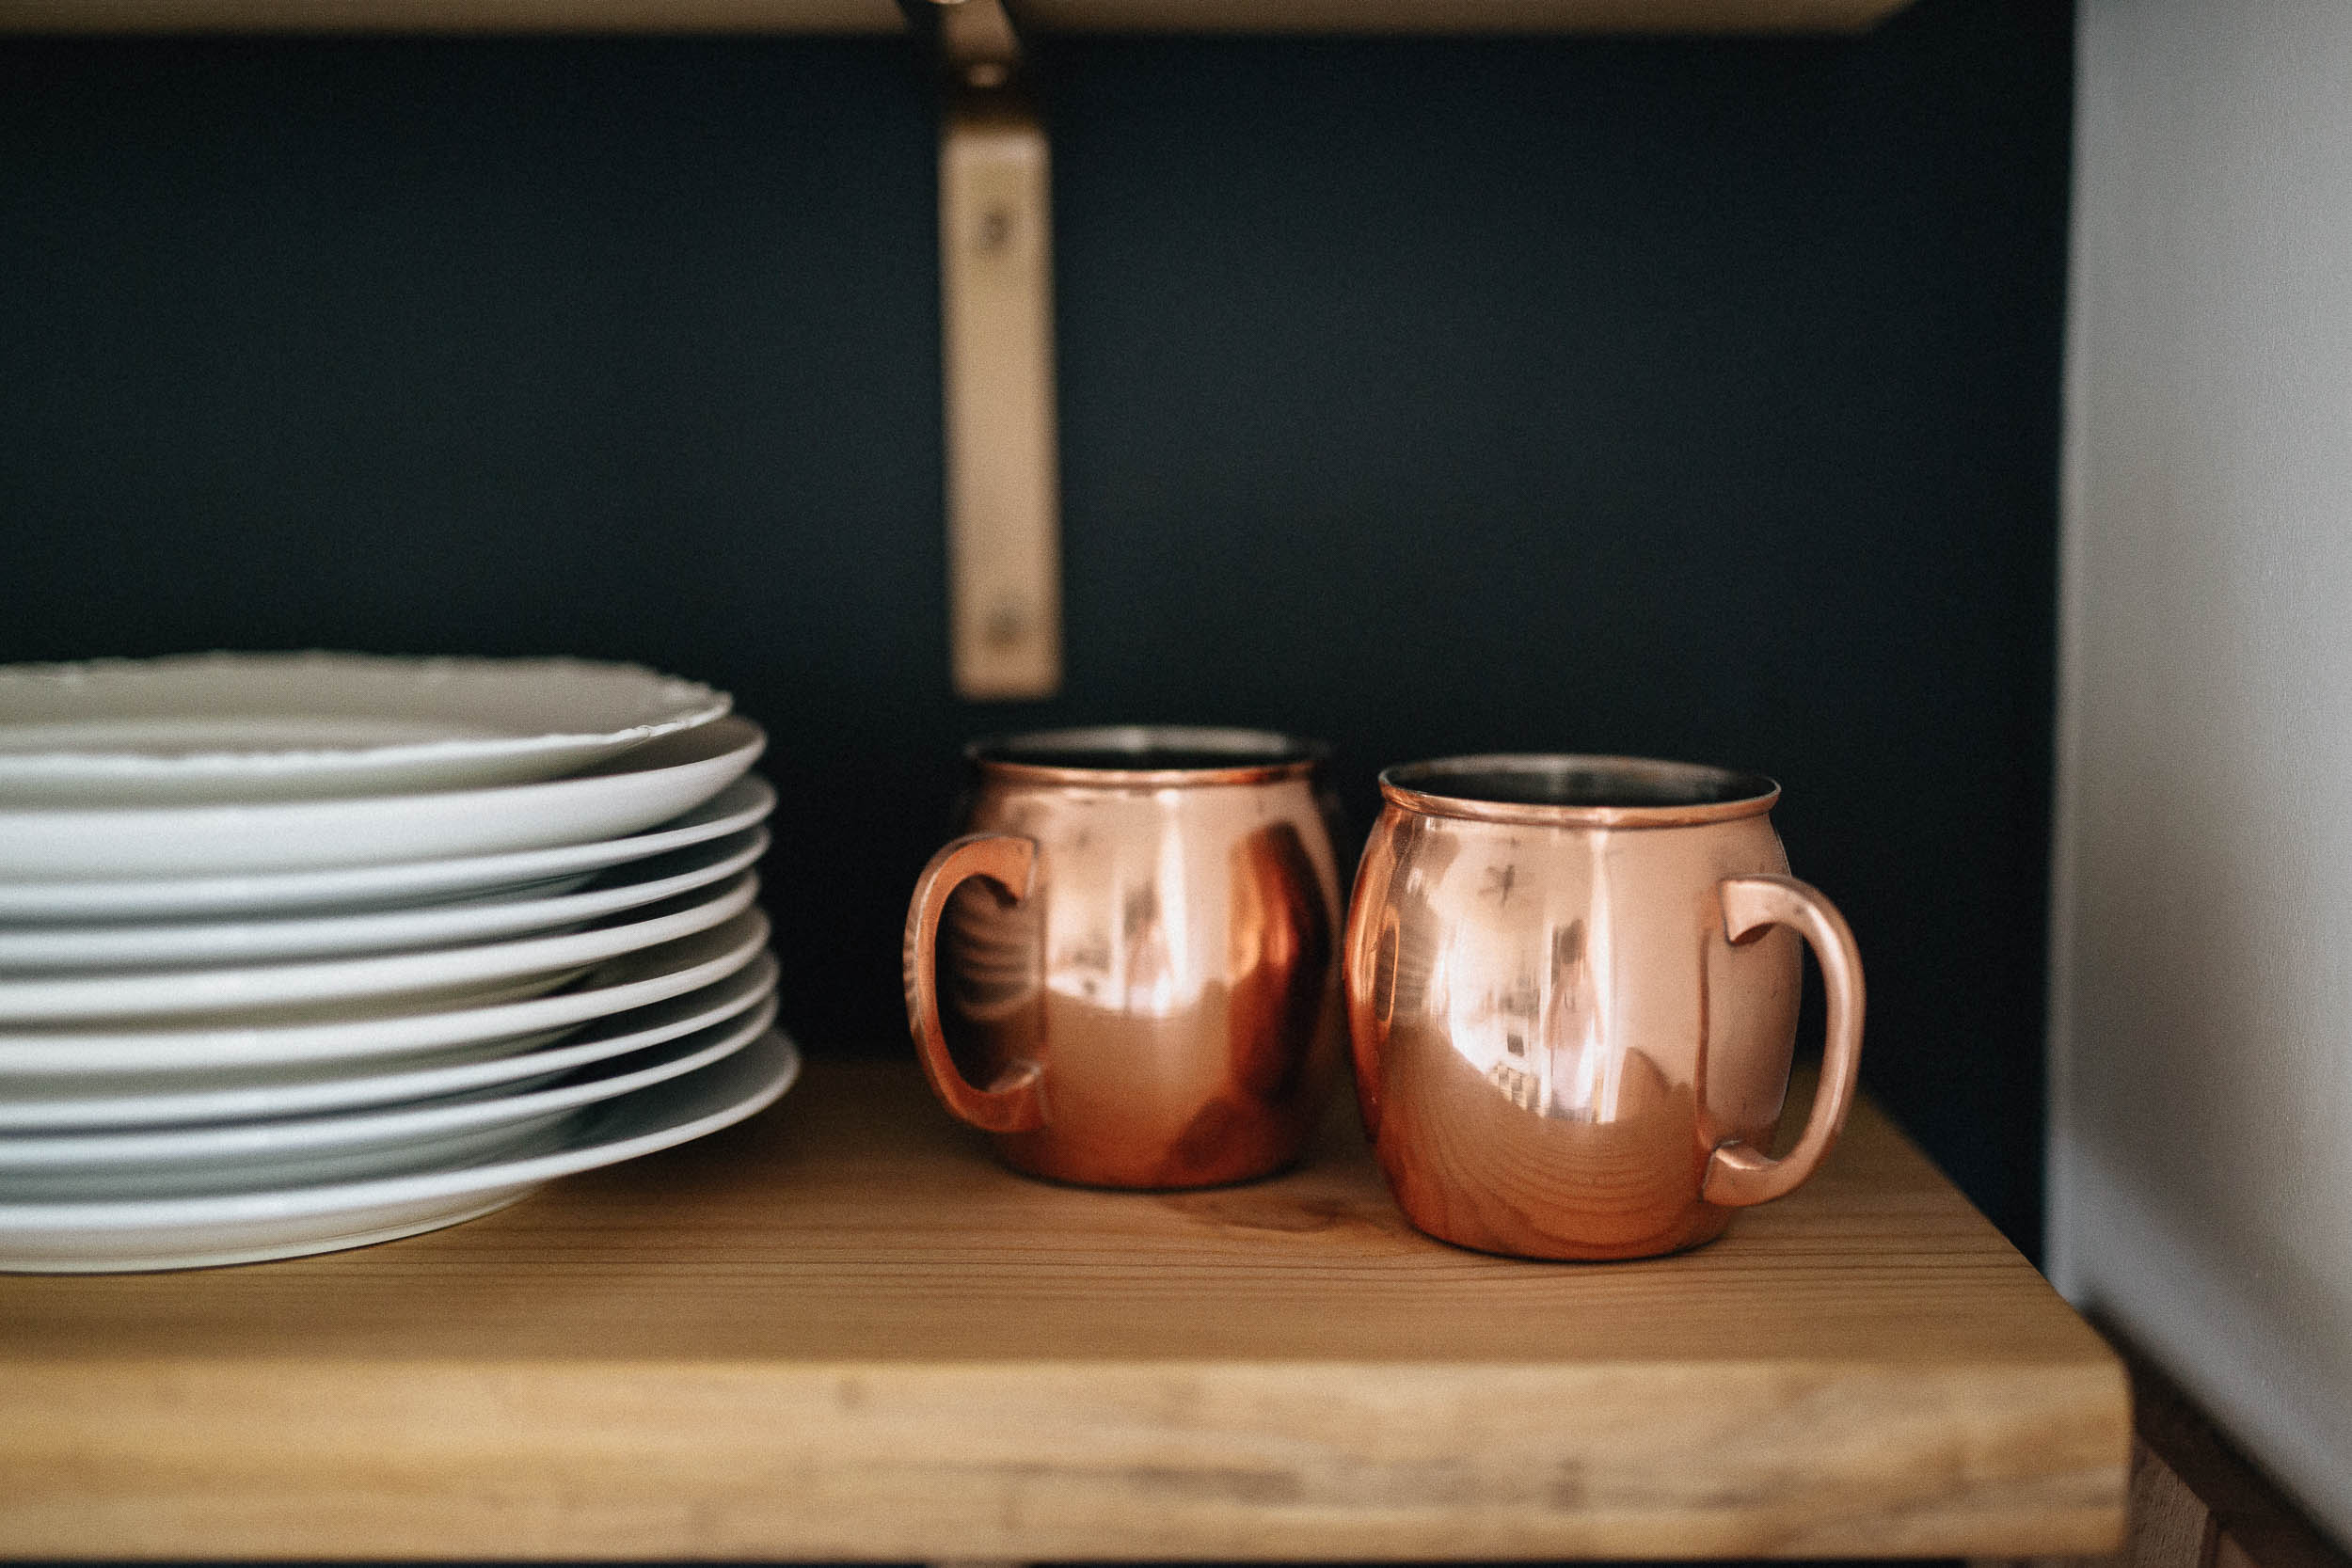 Open Shelves and Copper Mugs